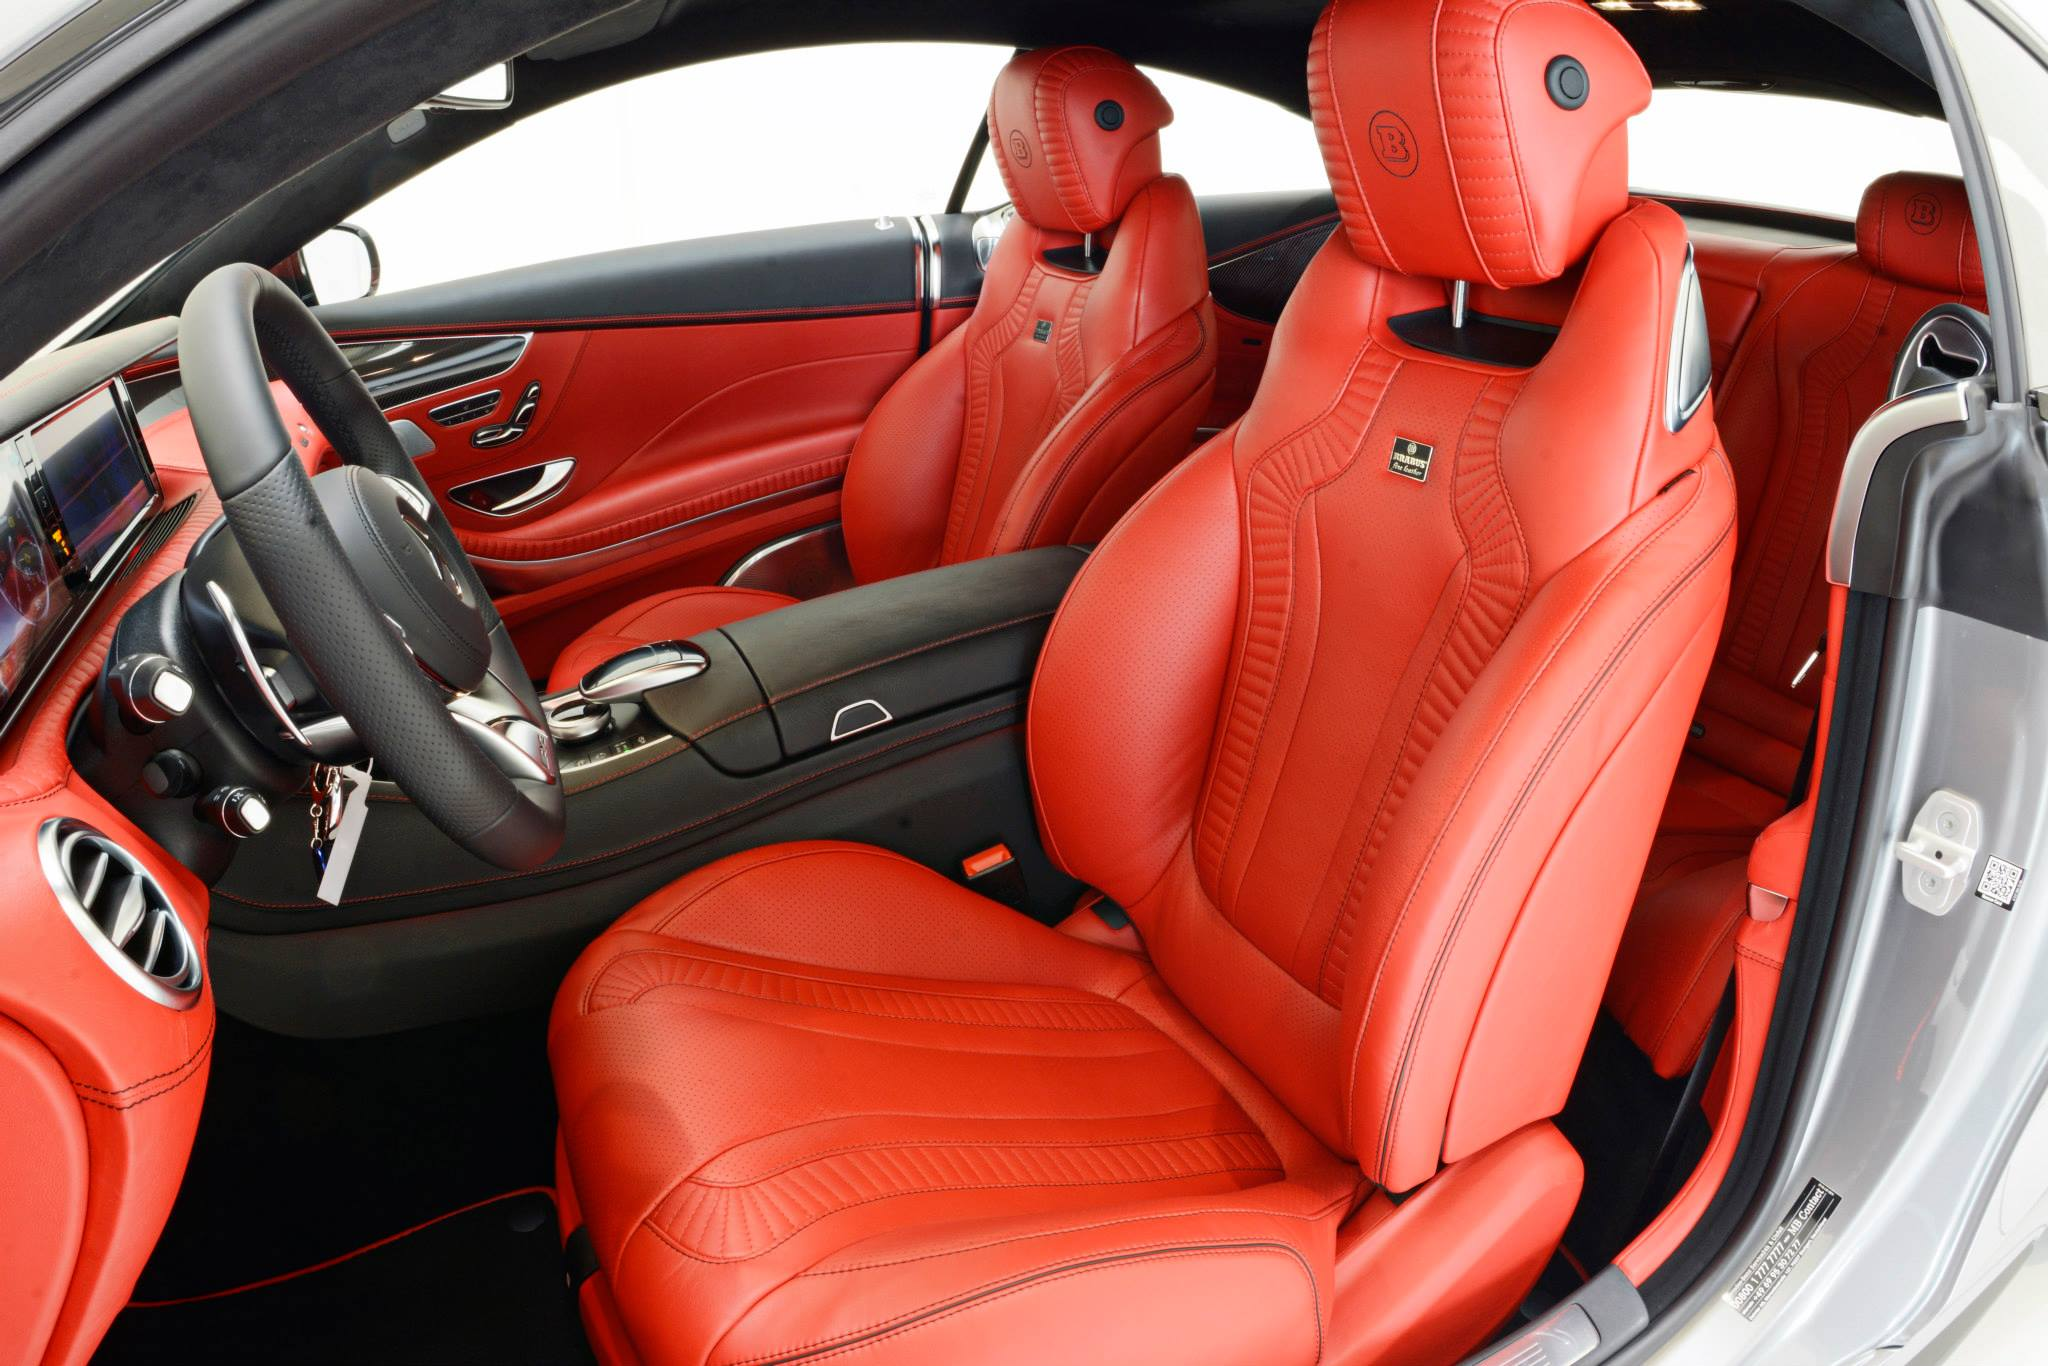 brabus 850 package tunes s63 amg coupe with red leather and silver paint autoevolution. Black Bedroom Furniture Sets. Home Design Ideas